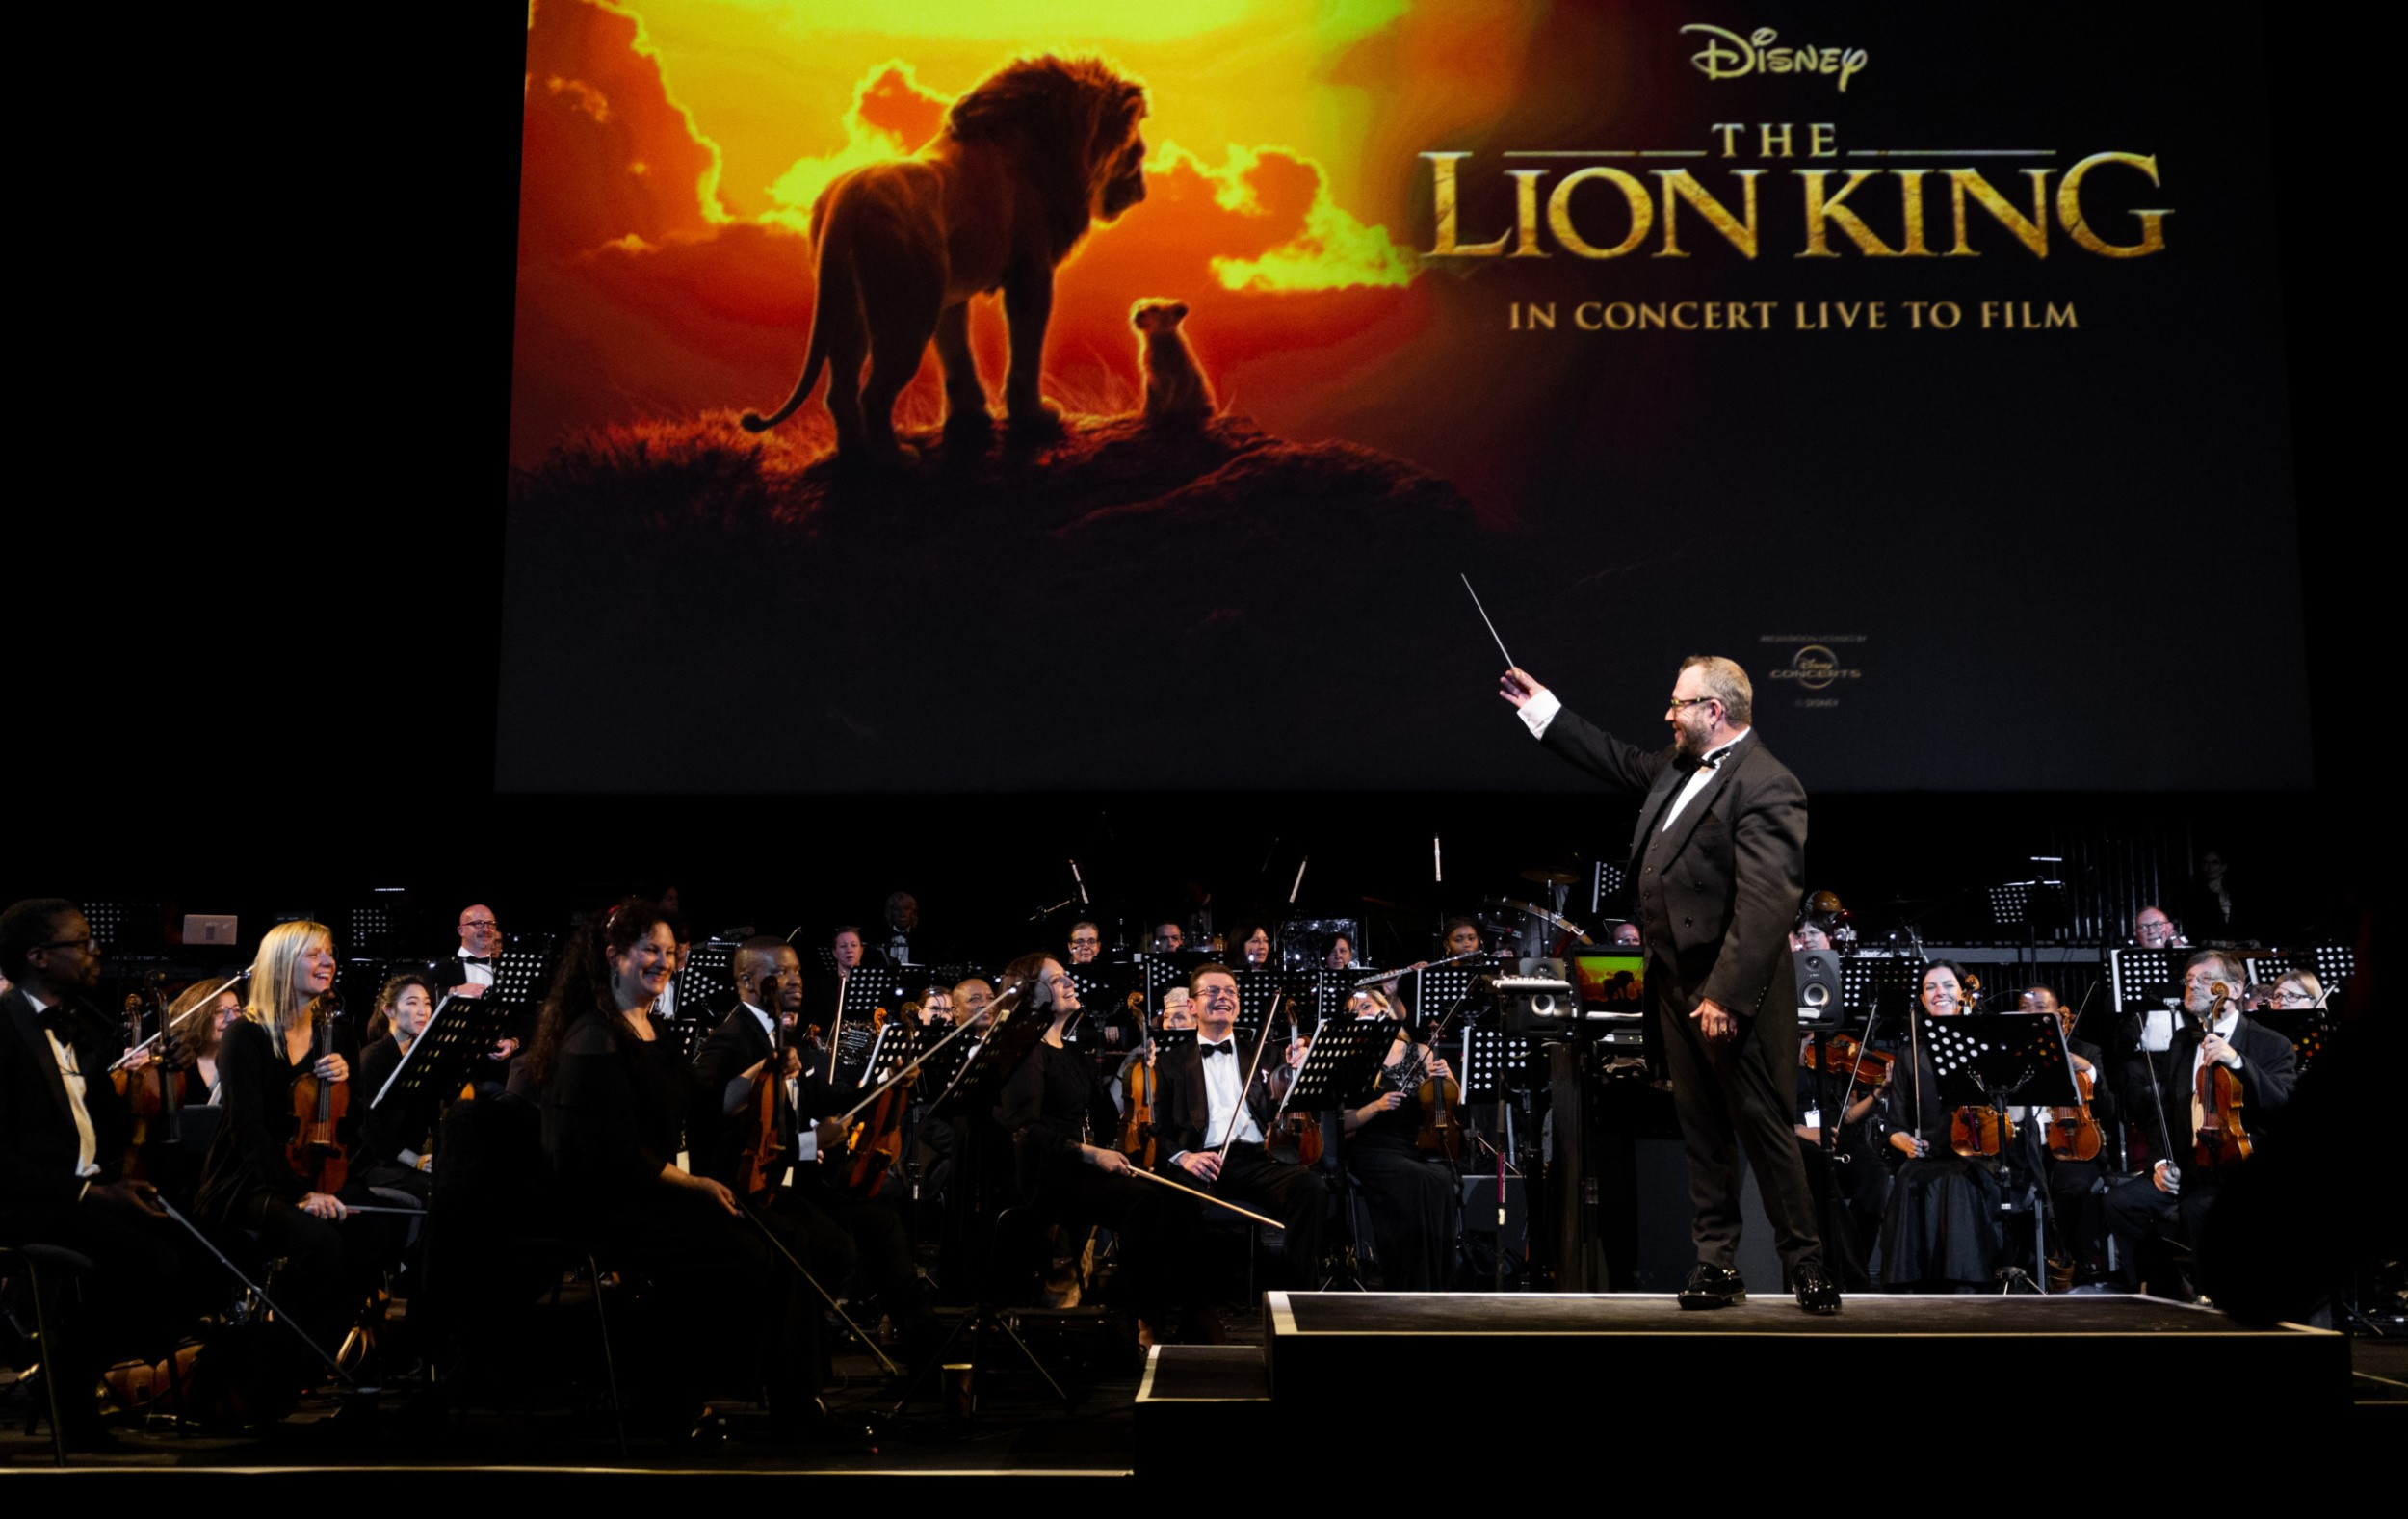 Disney's The Lion King LIVE In Concert